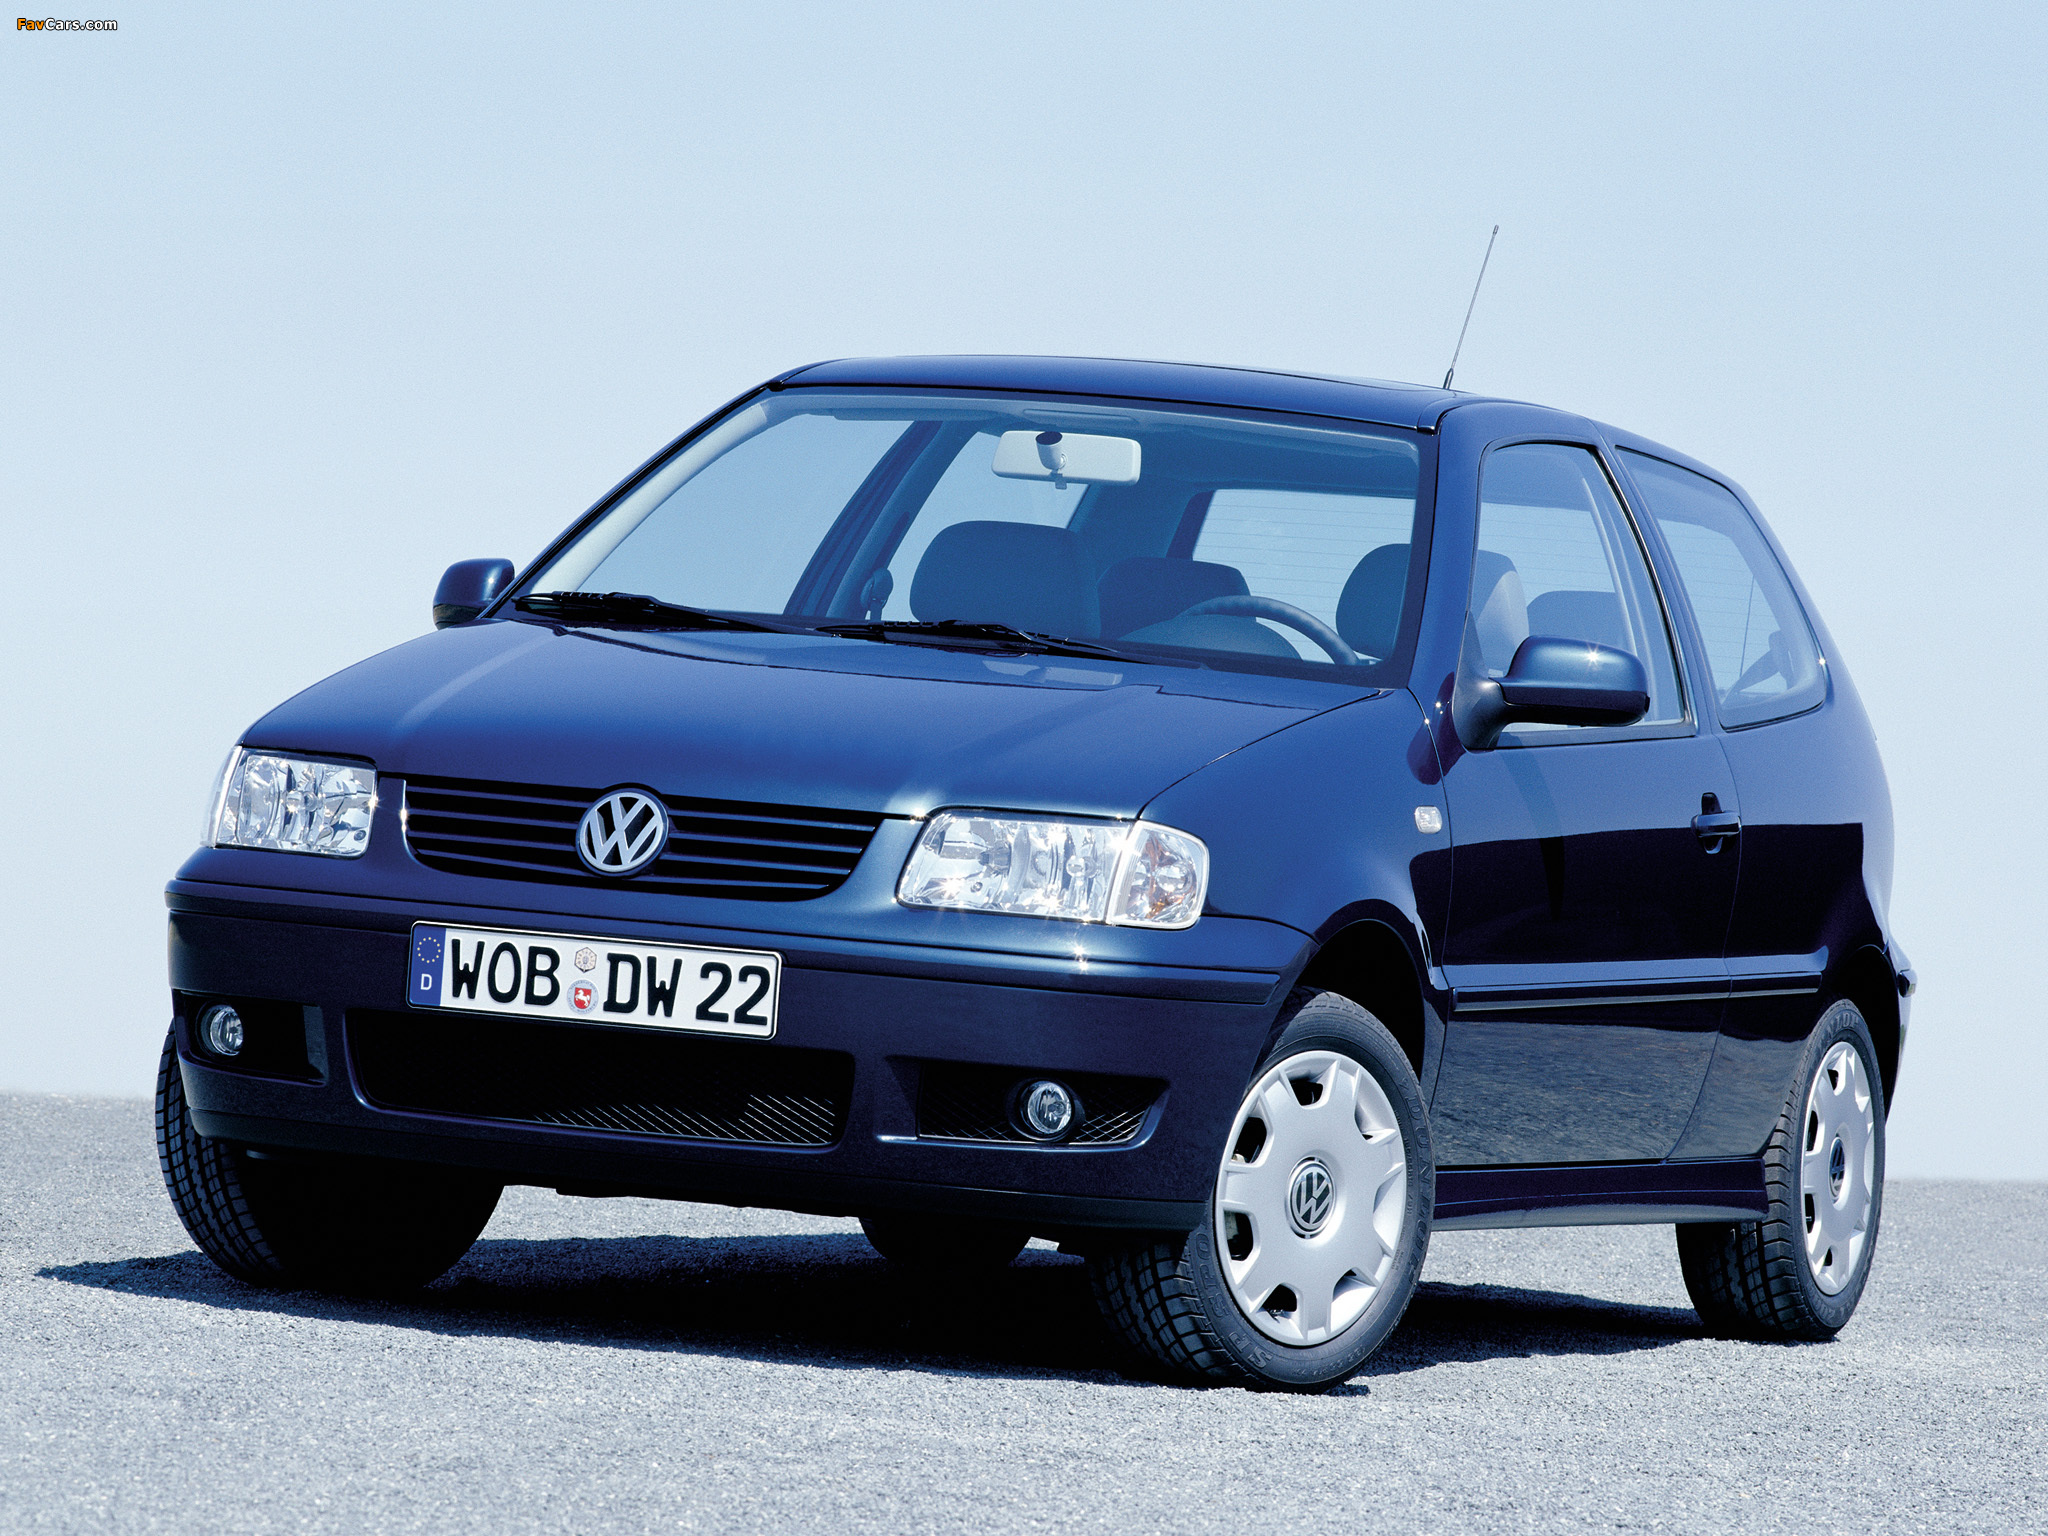 volkswagen polo 3 door typ 6n2 1999 2001 wallpapers. Black Bedroom Furniture Sets. Home Design Ideas